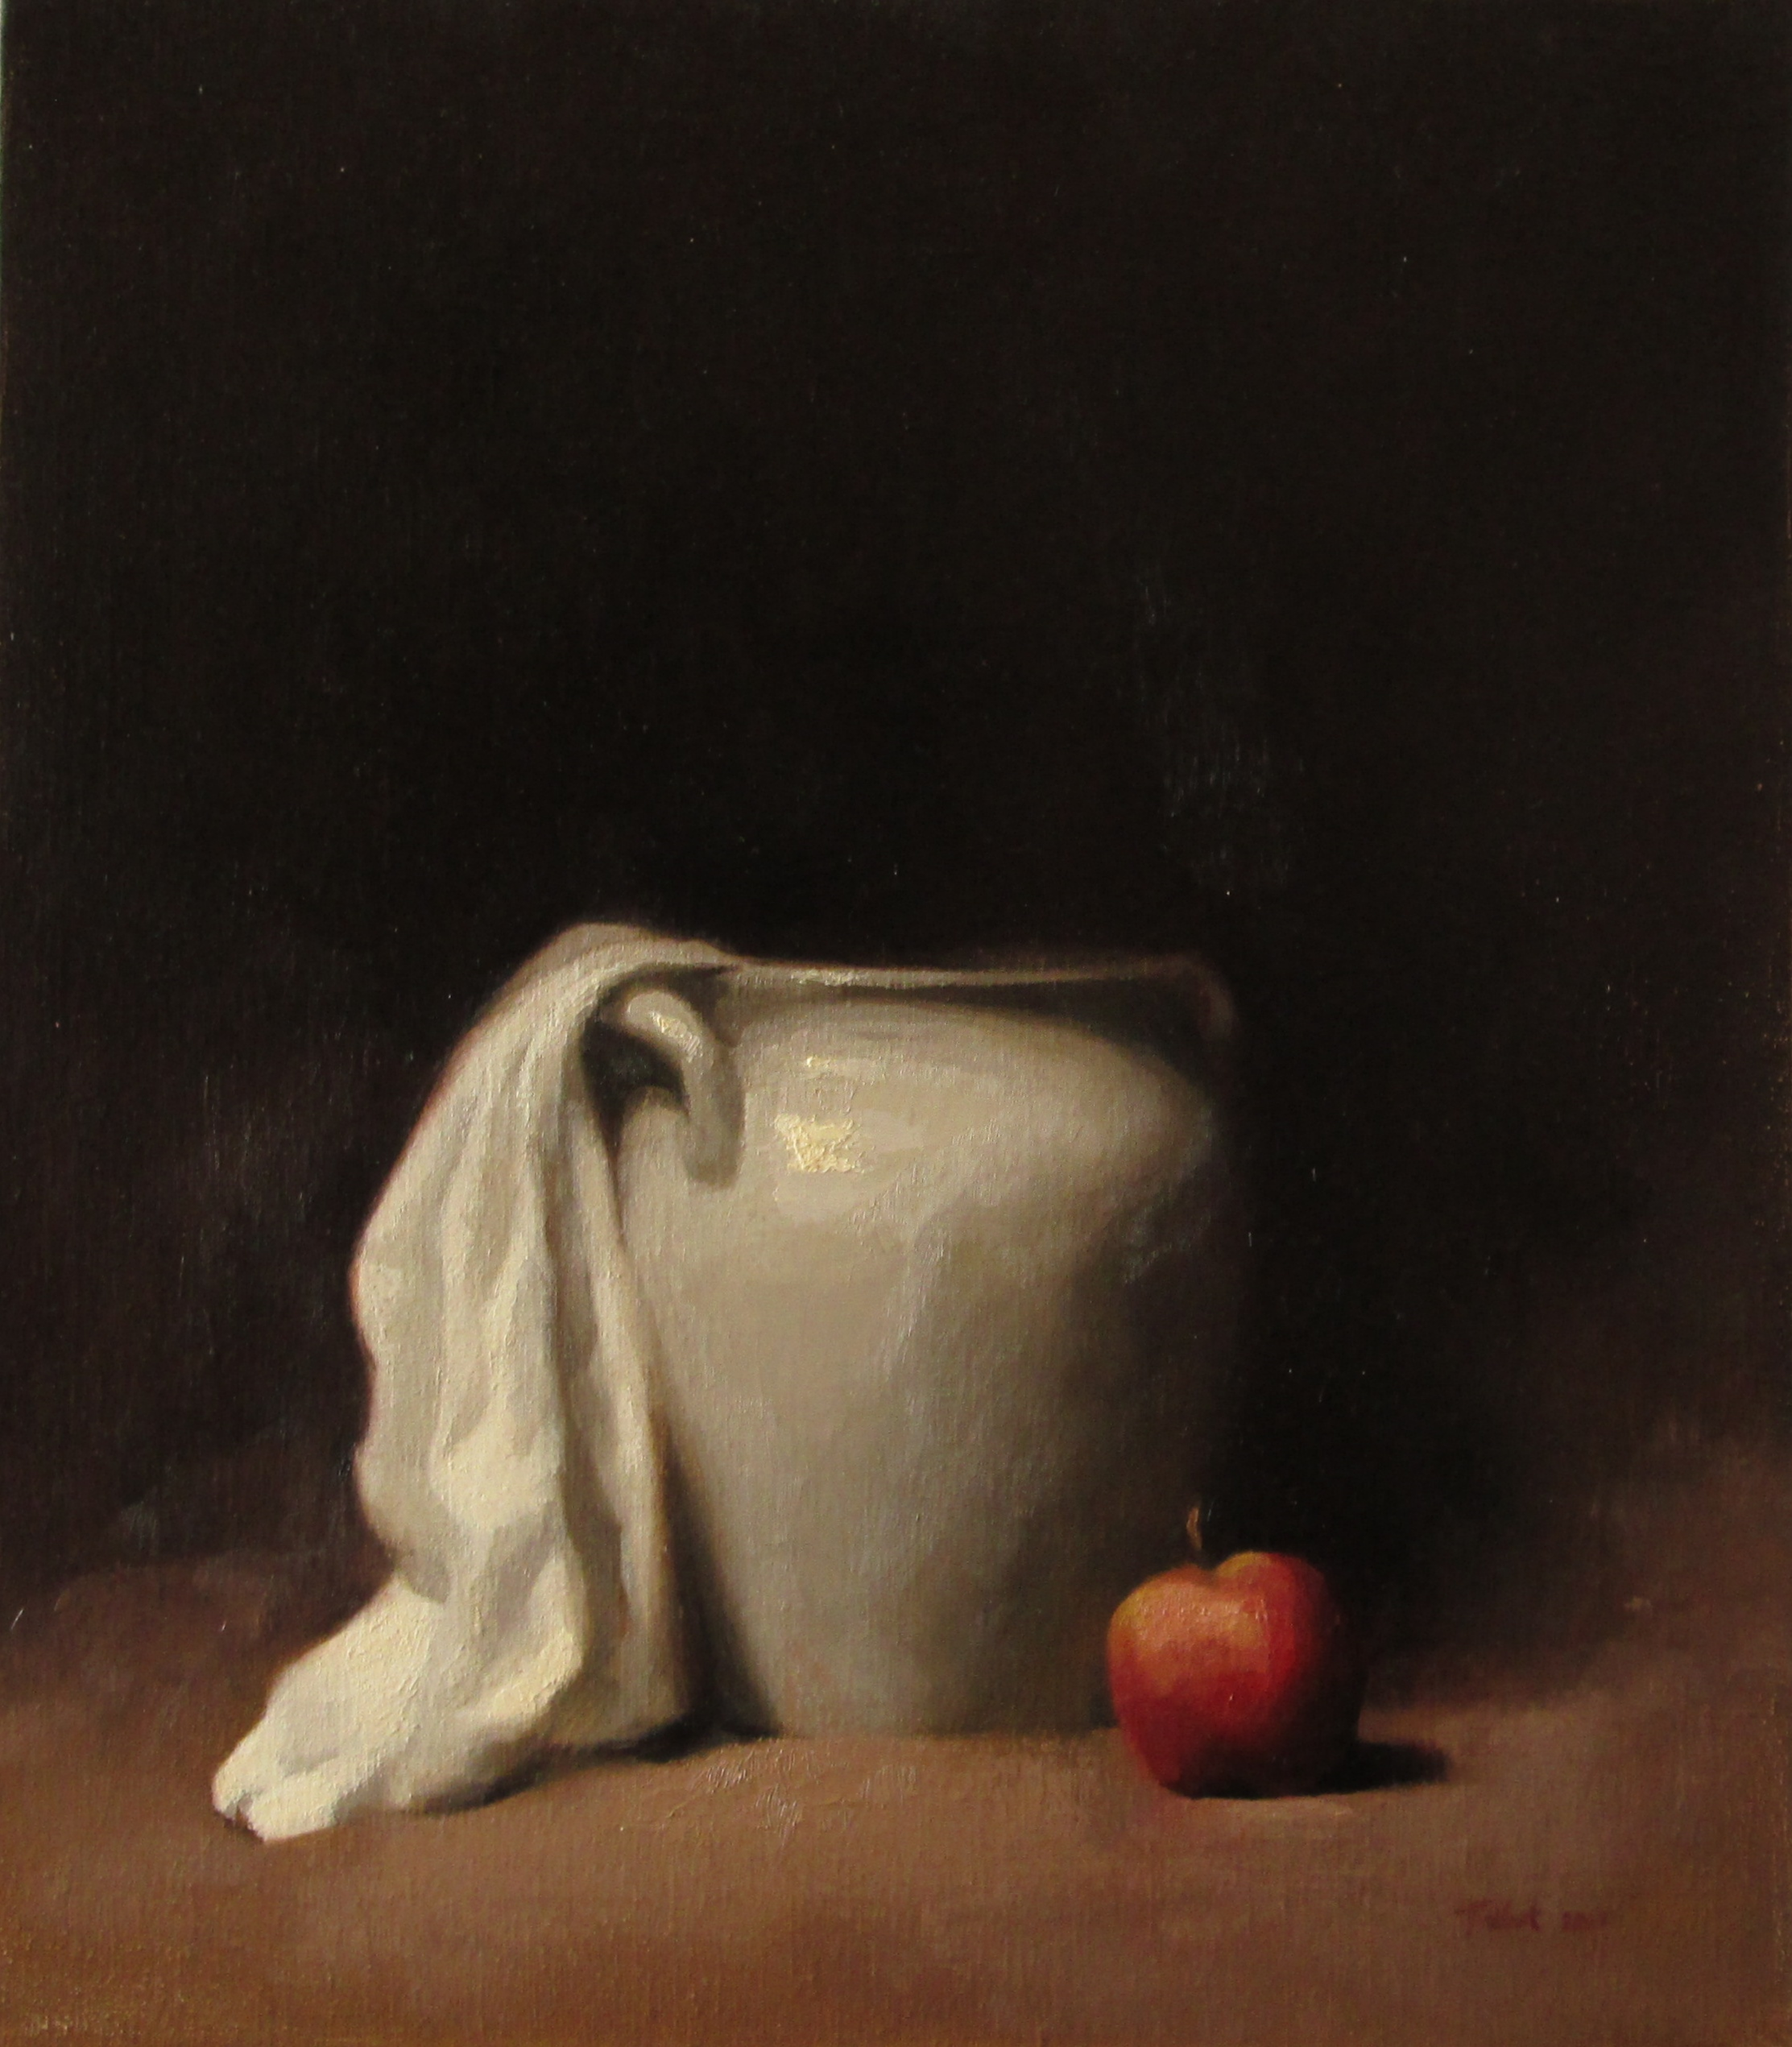 STILL LIFE WITH RED APPLE (sold)